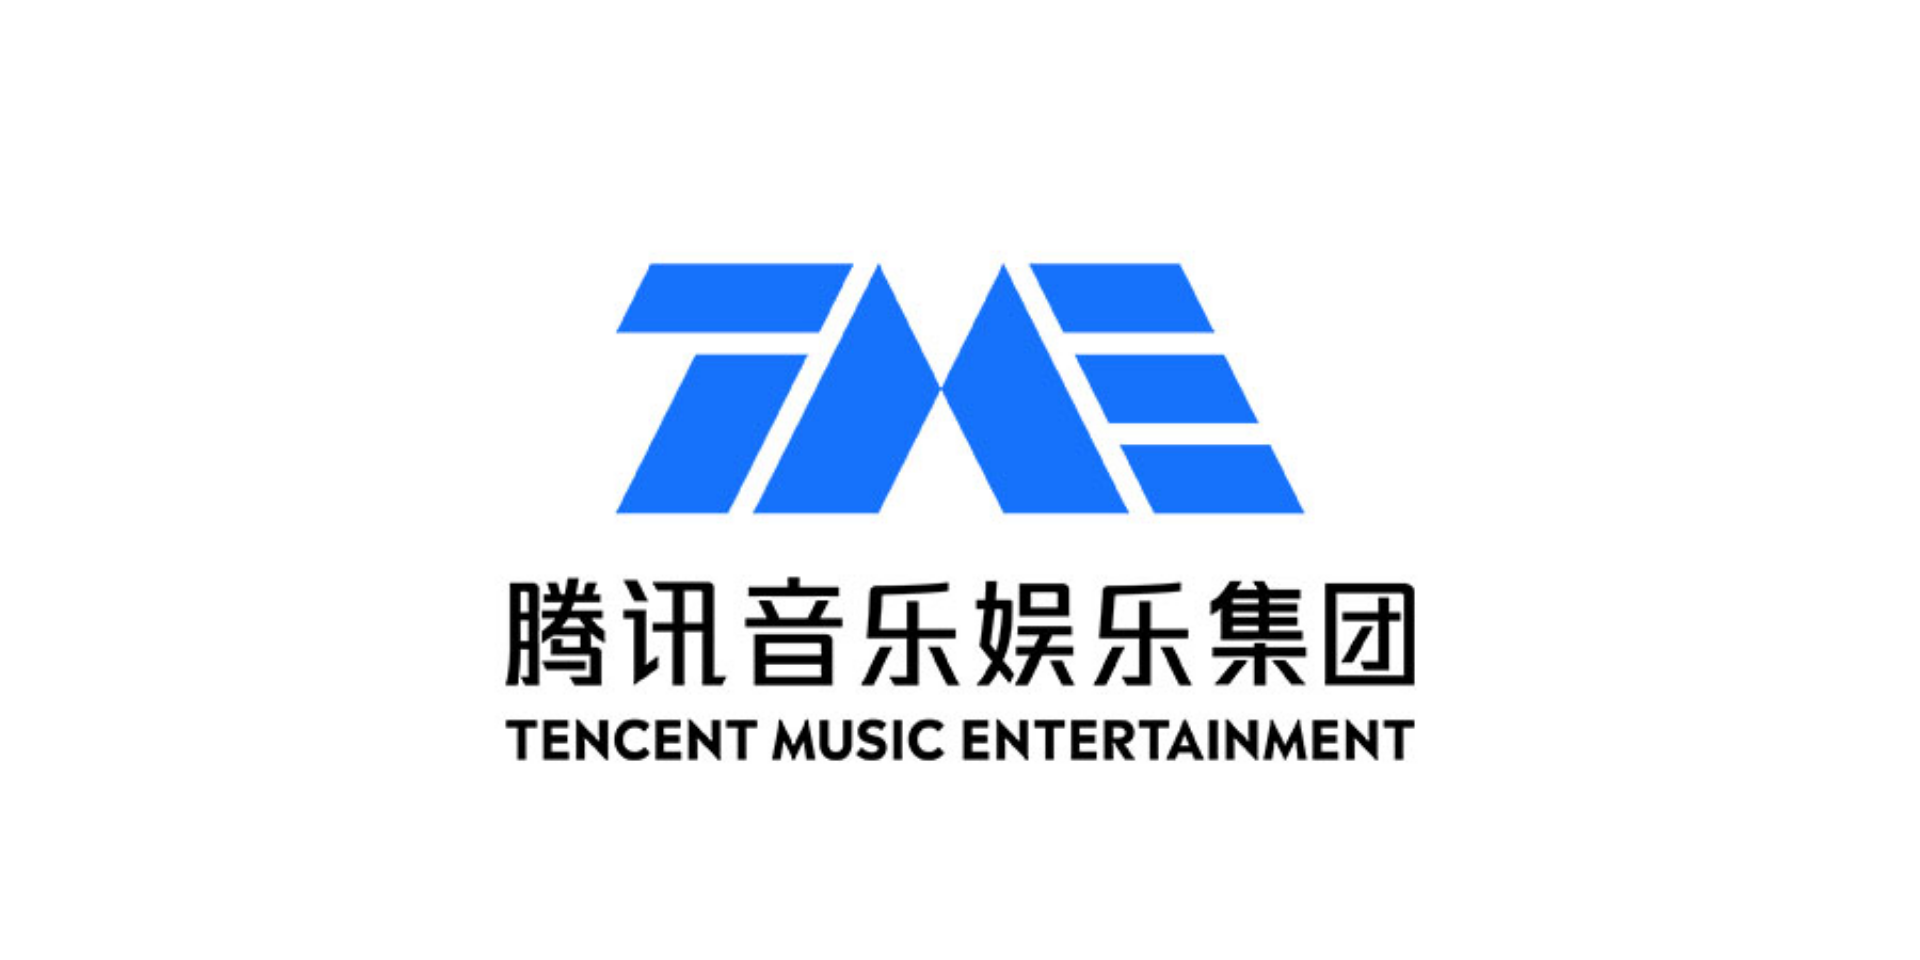 Tencent Music Entertainment records 5.3 million new online music paying users